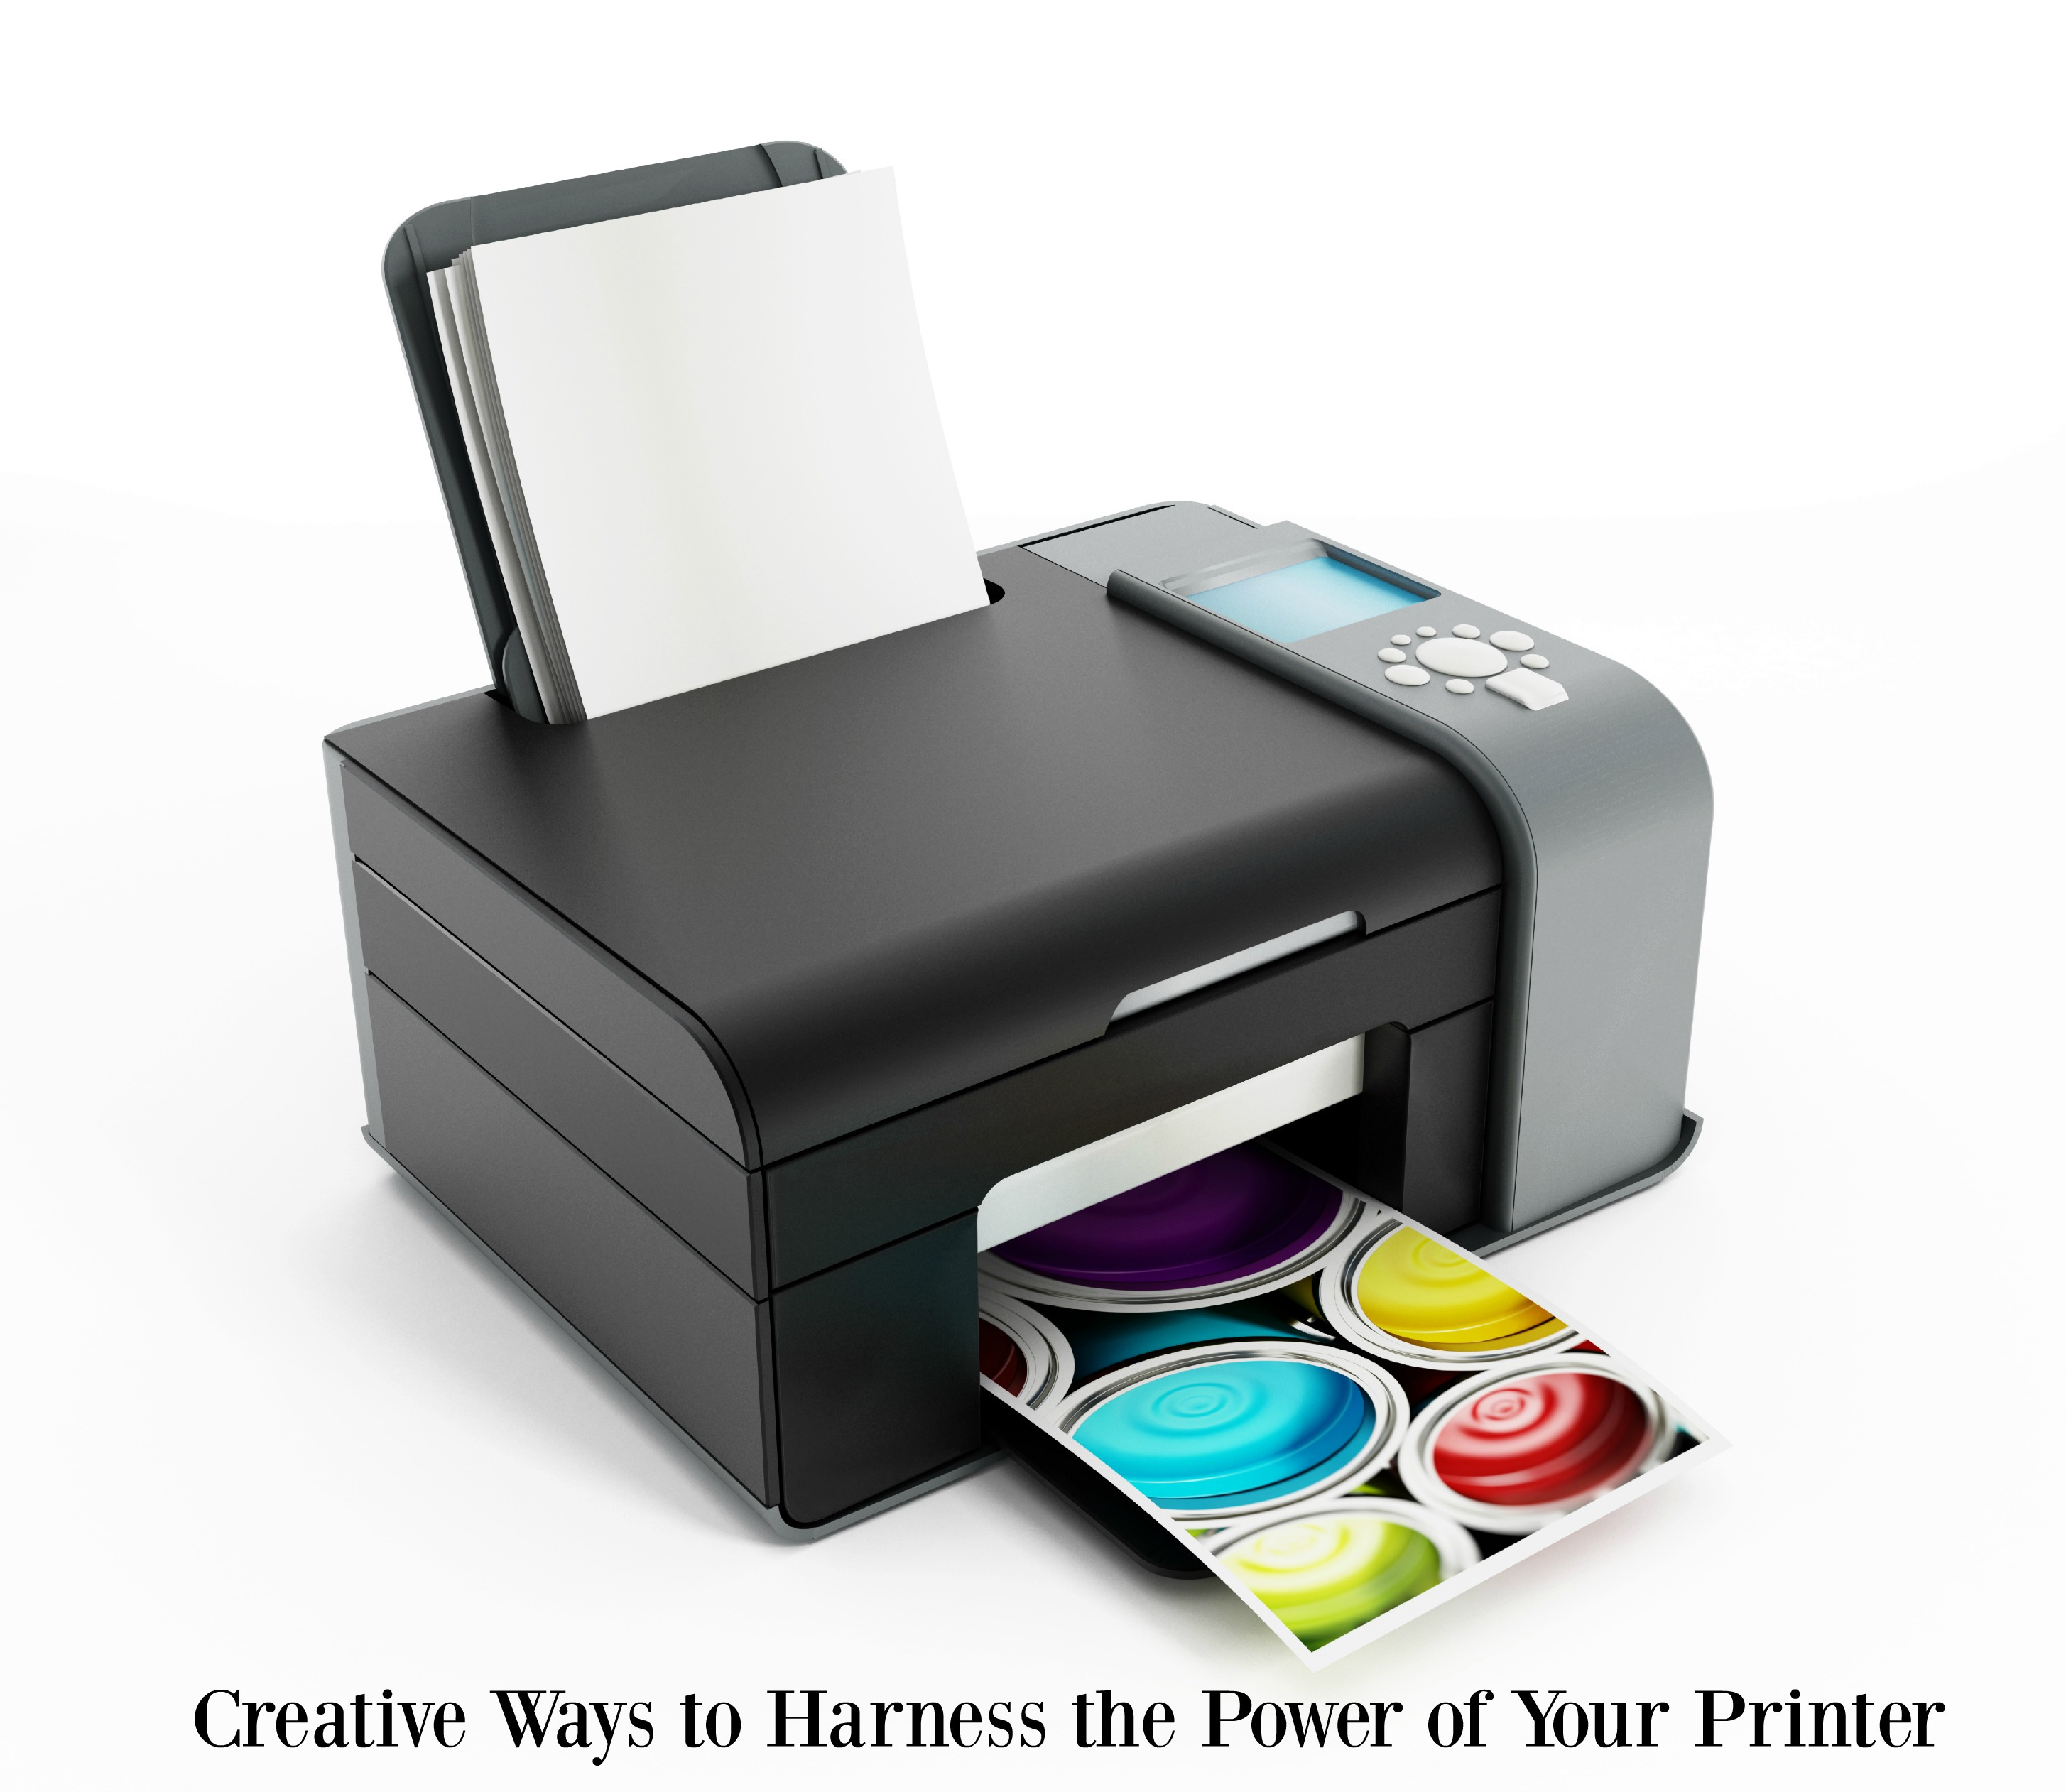 Creative Ways to Harness the Power of Your Printer